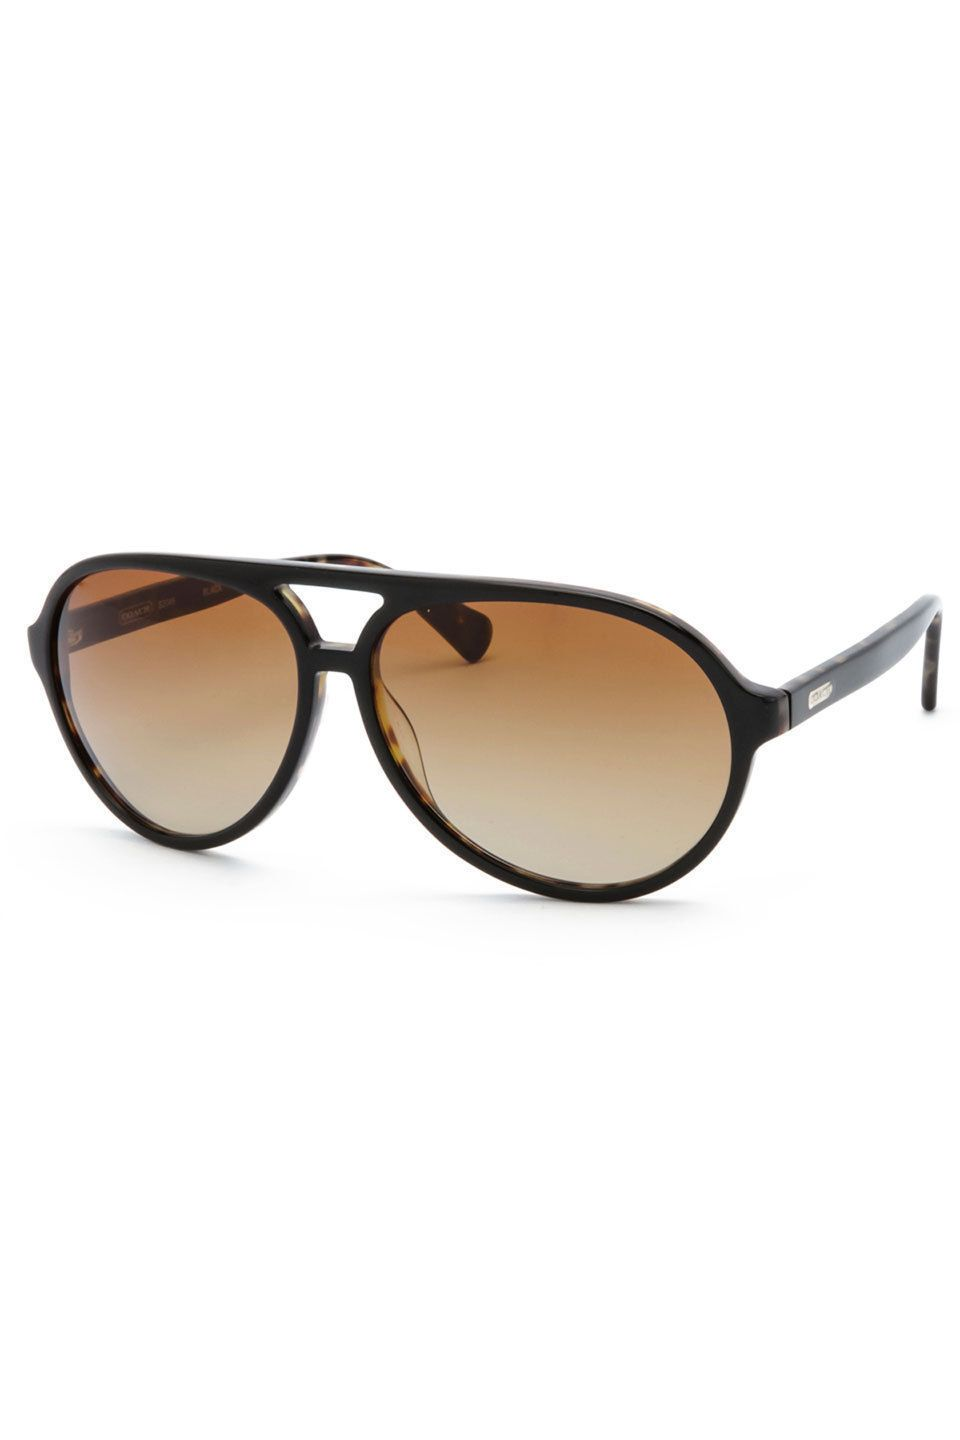 a9dd7042db Coach Ladies  Krista Sunglasses In Black - Beyond the Rack